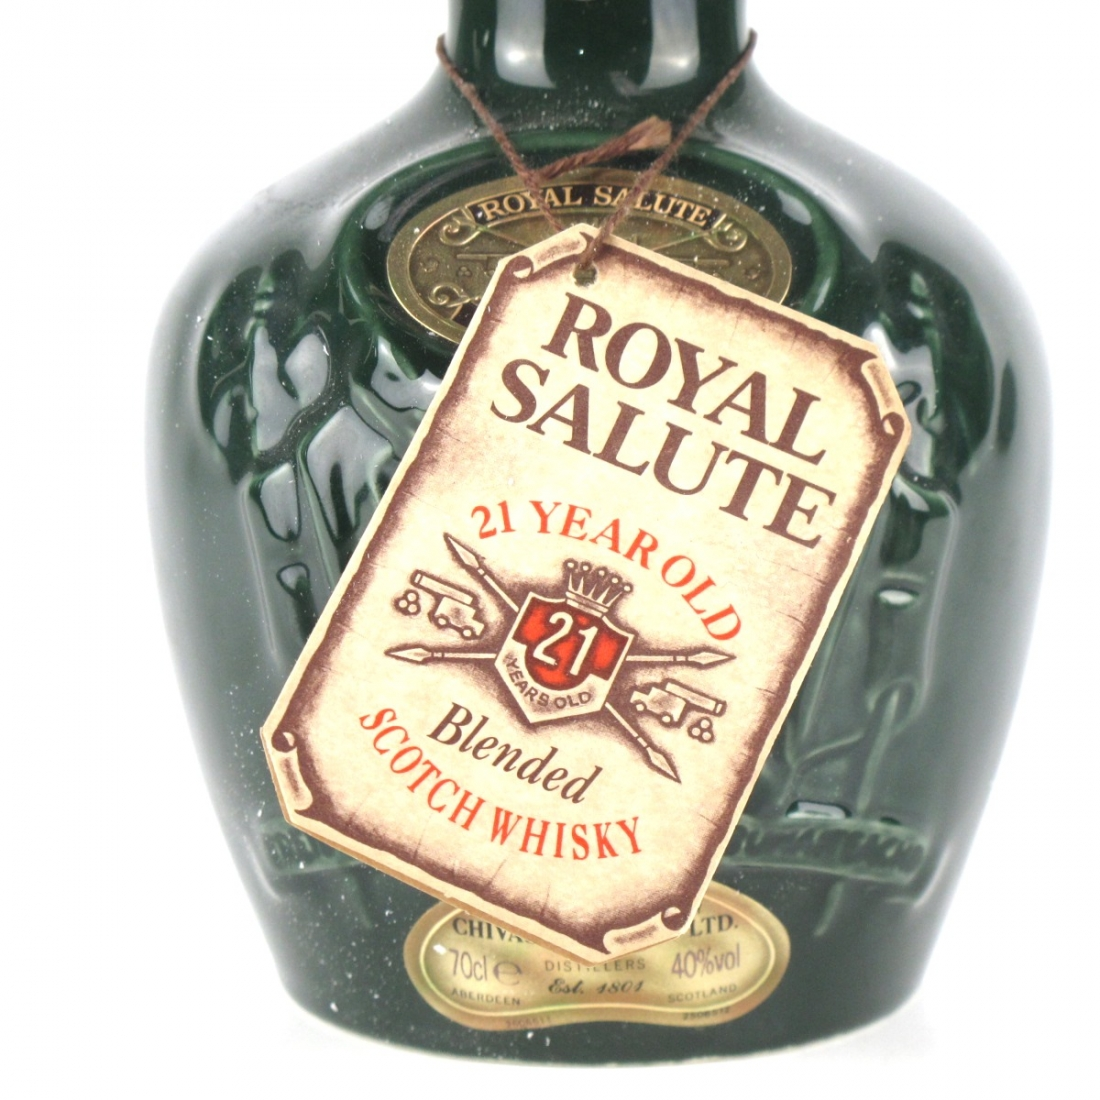 Chivas 21 Year Old Royal Salute